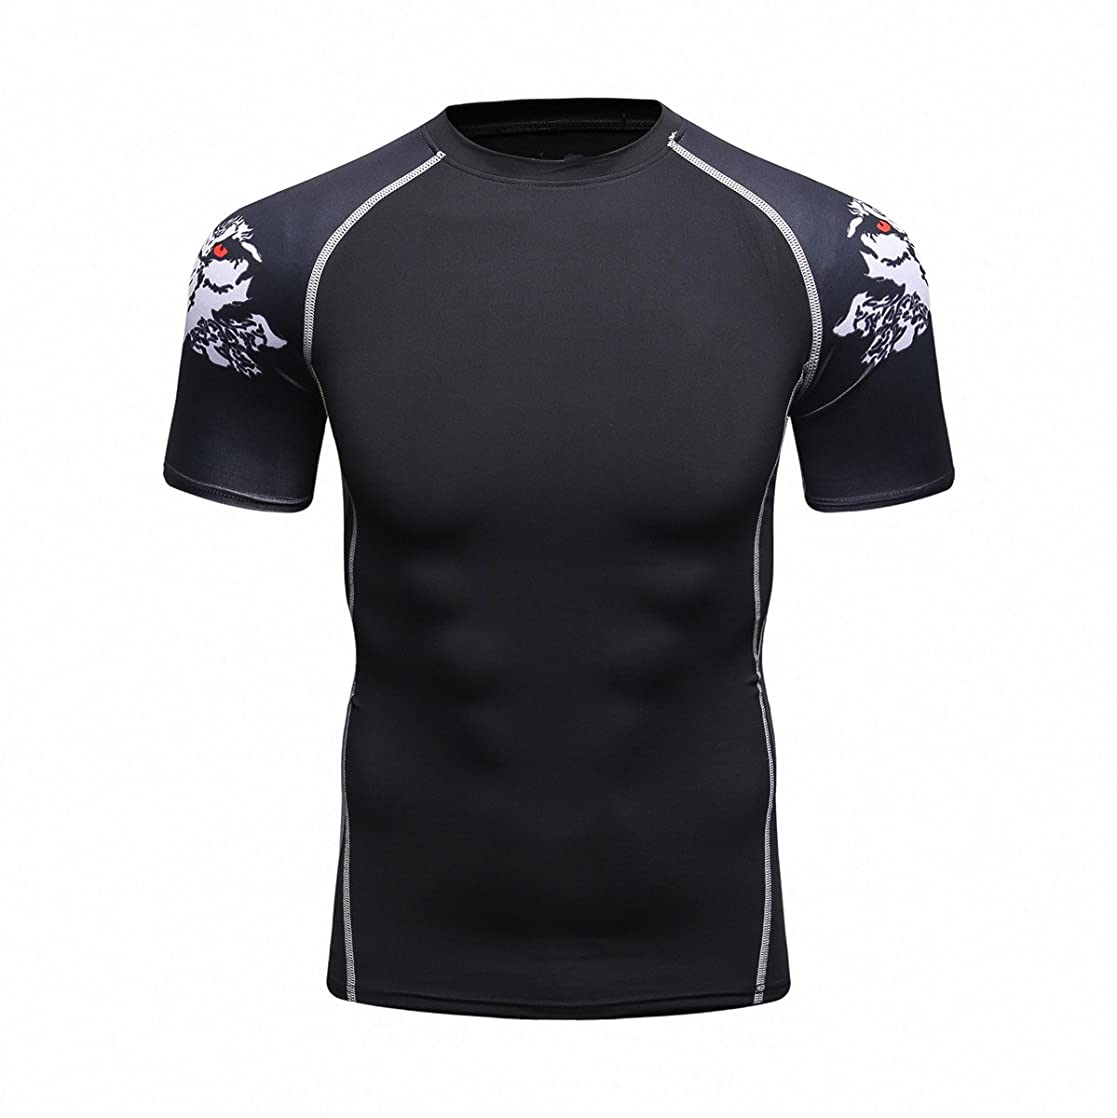 Fanii Quare Men's Lightweight Short Sleeve Cool Dry Rashguards Compression Sports Workout T-Shirt vehtrcrg05806